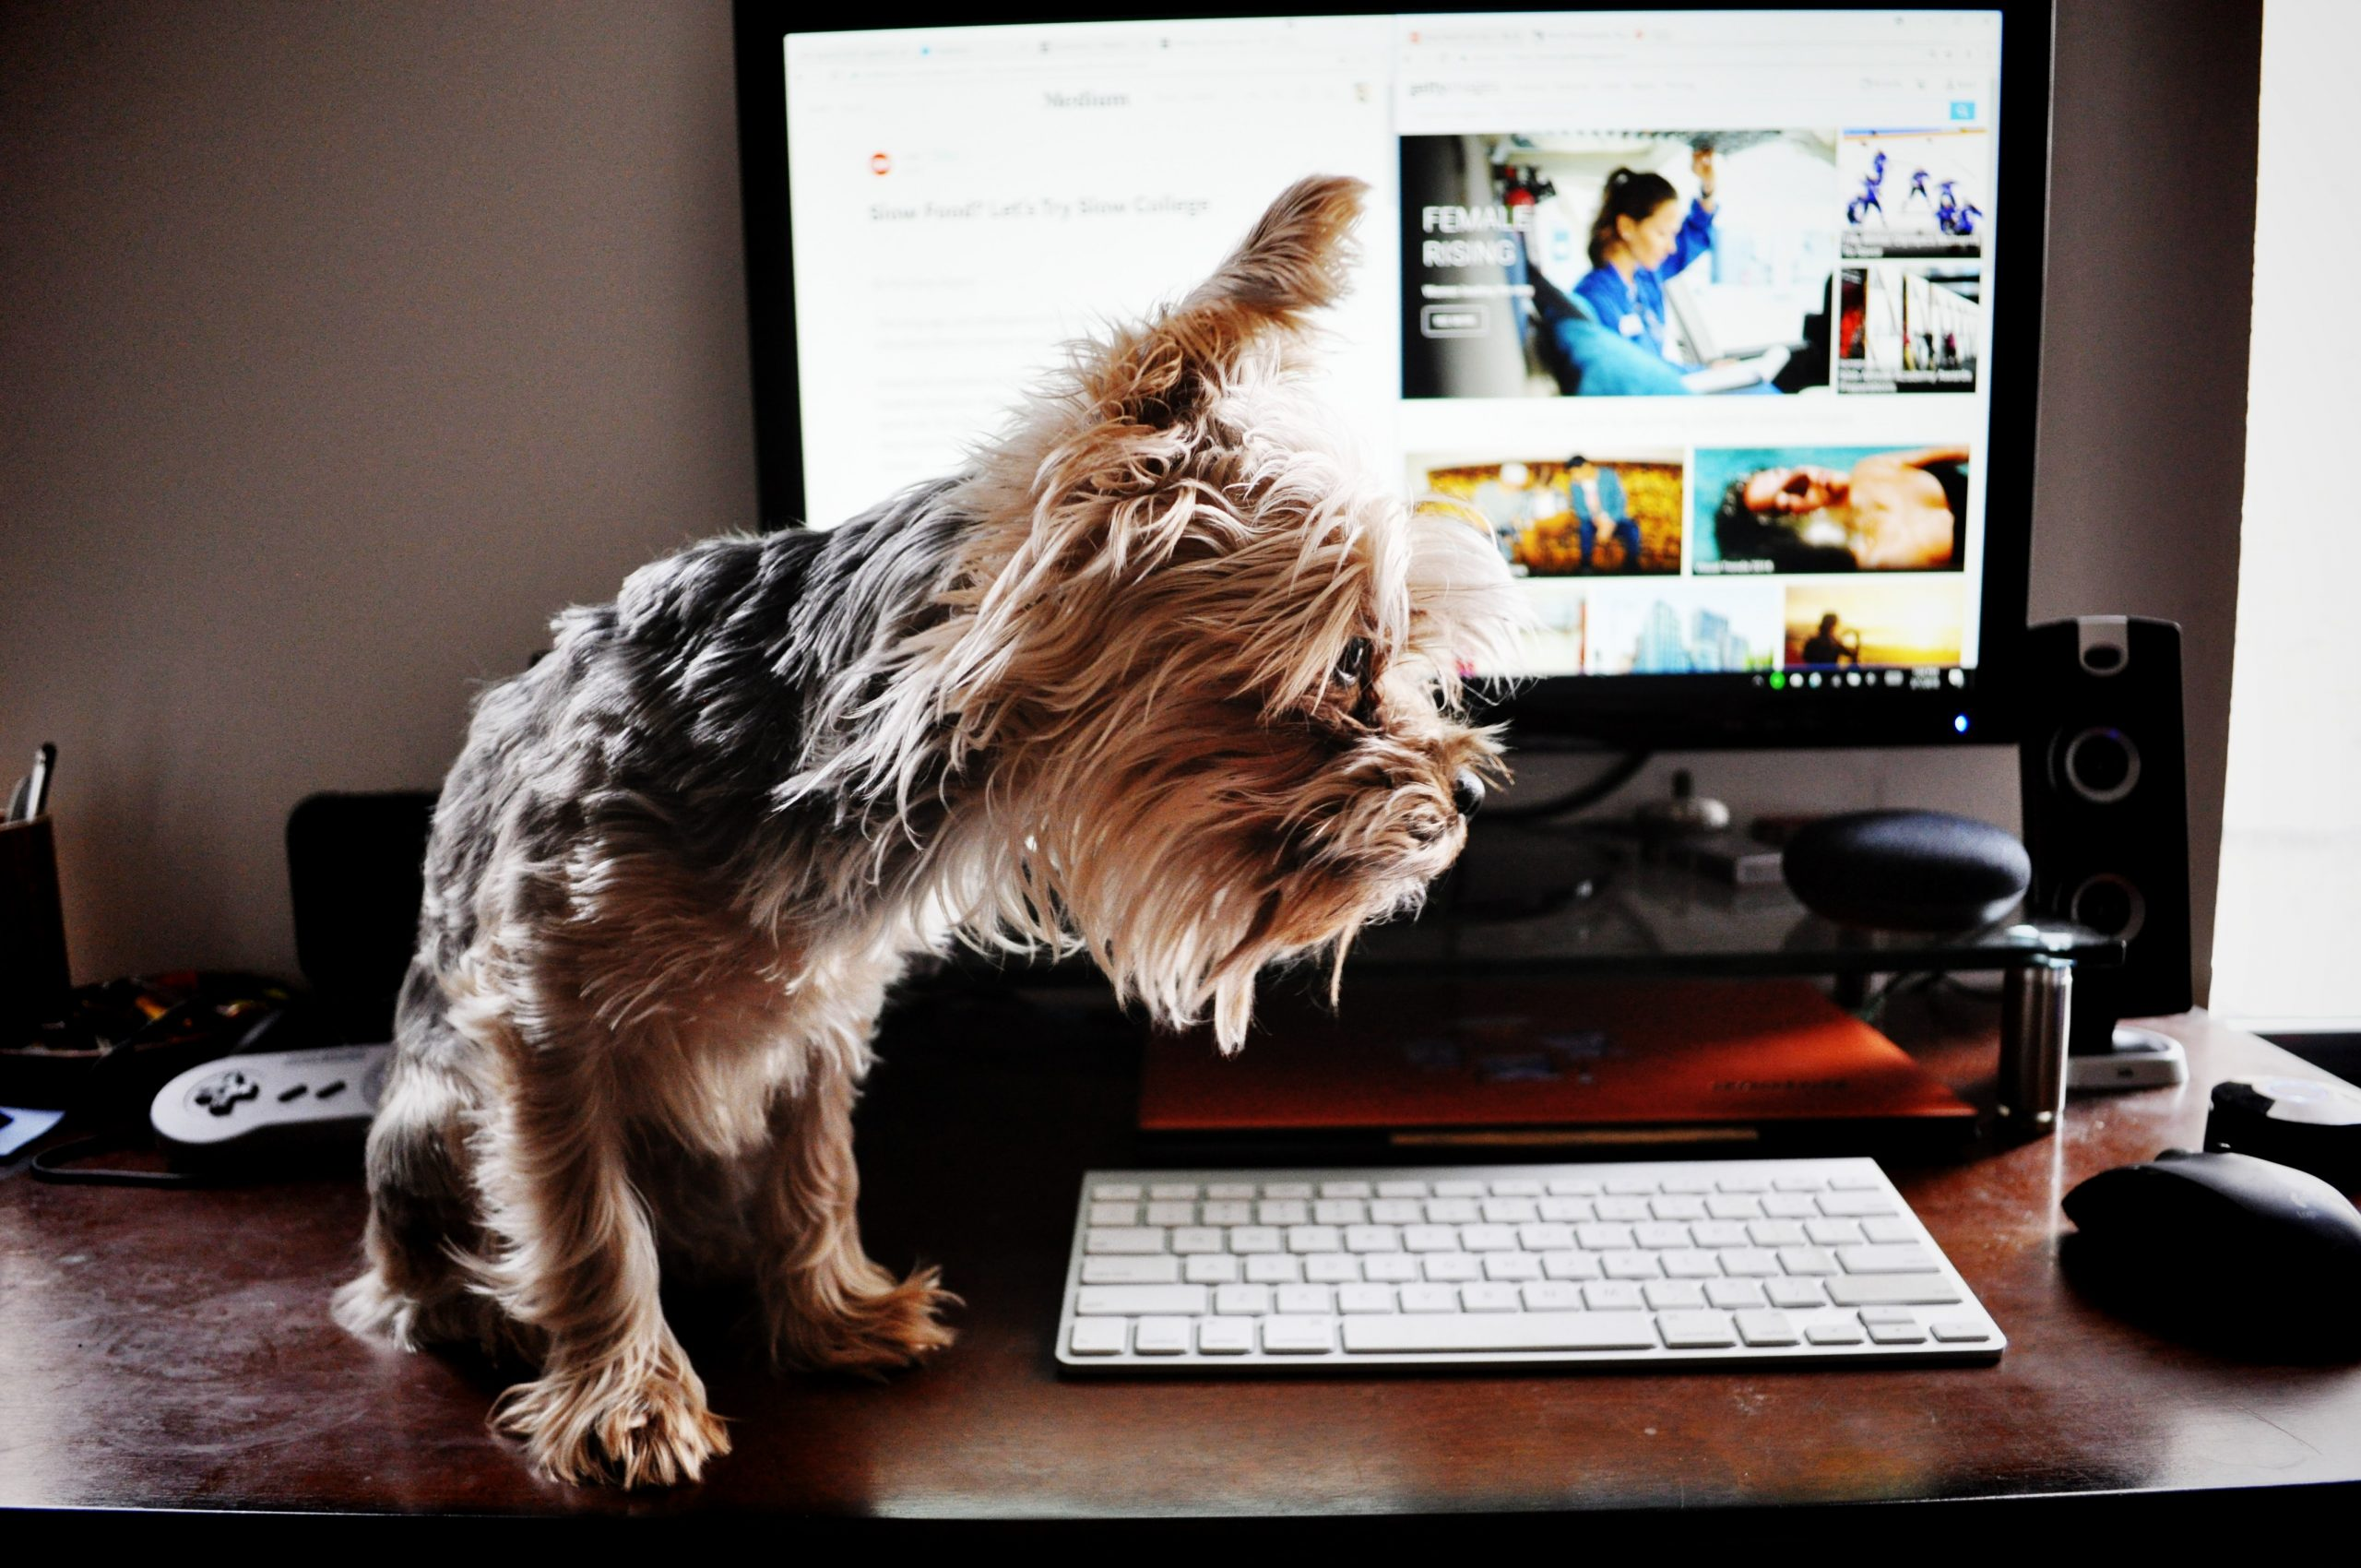 Veterinary Content- Dog and laptop